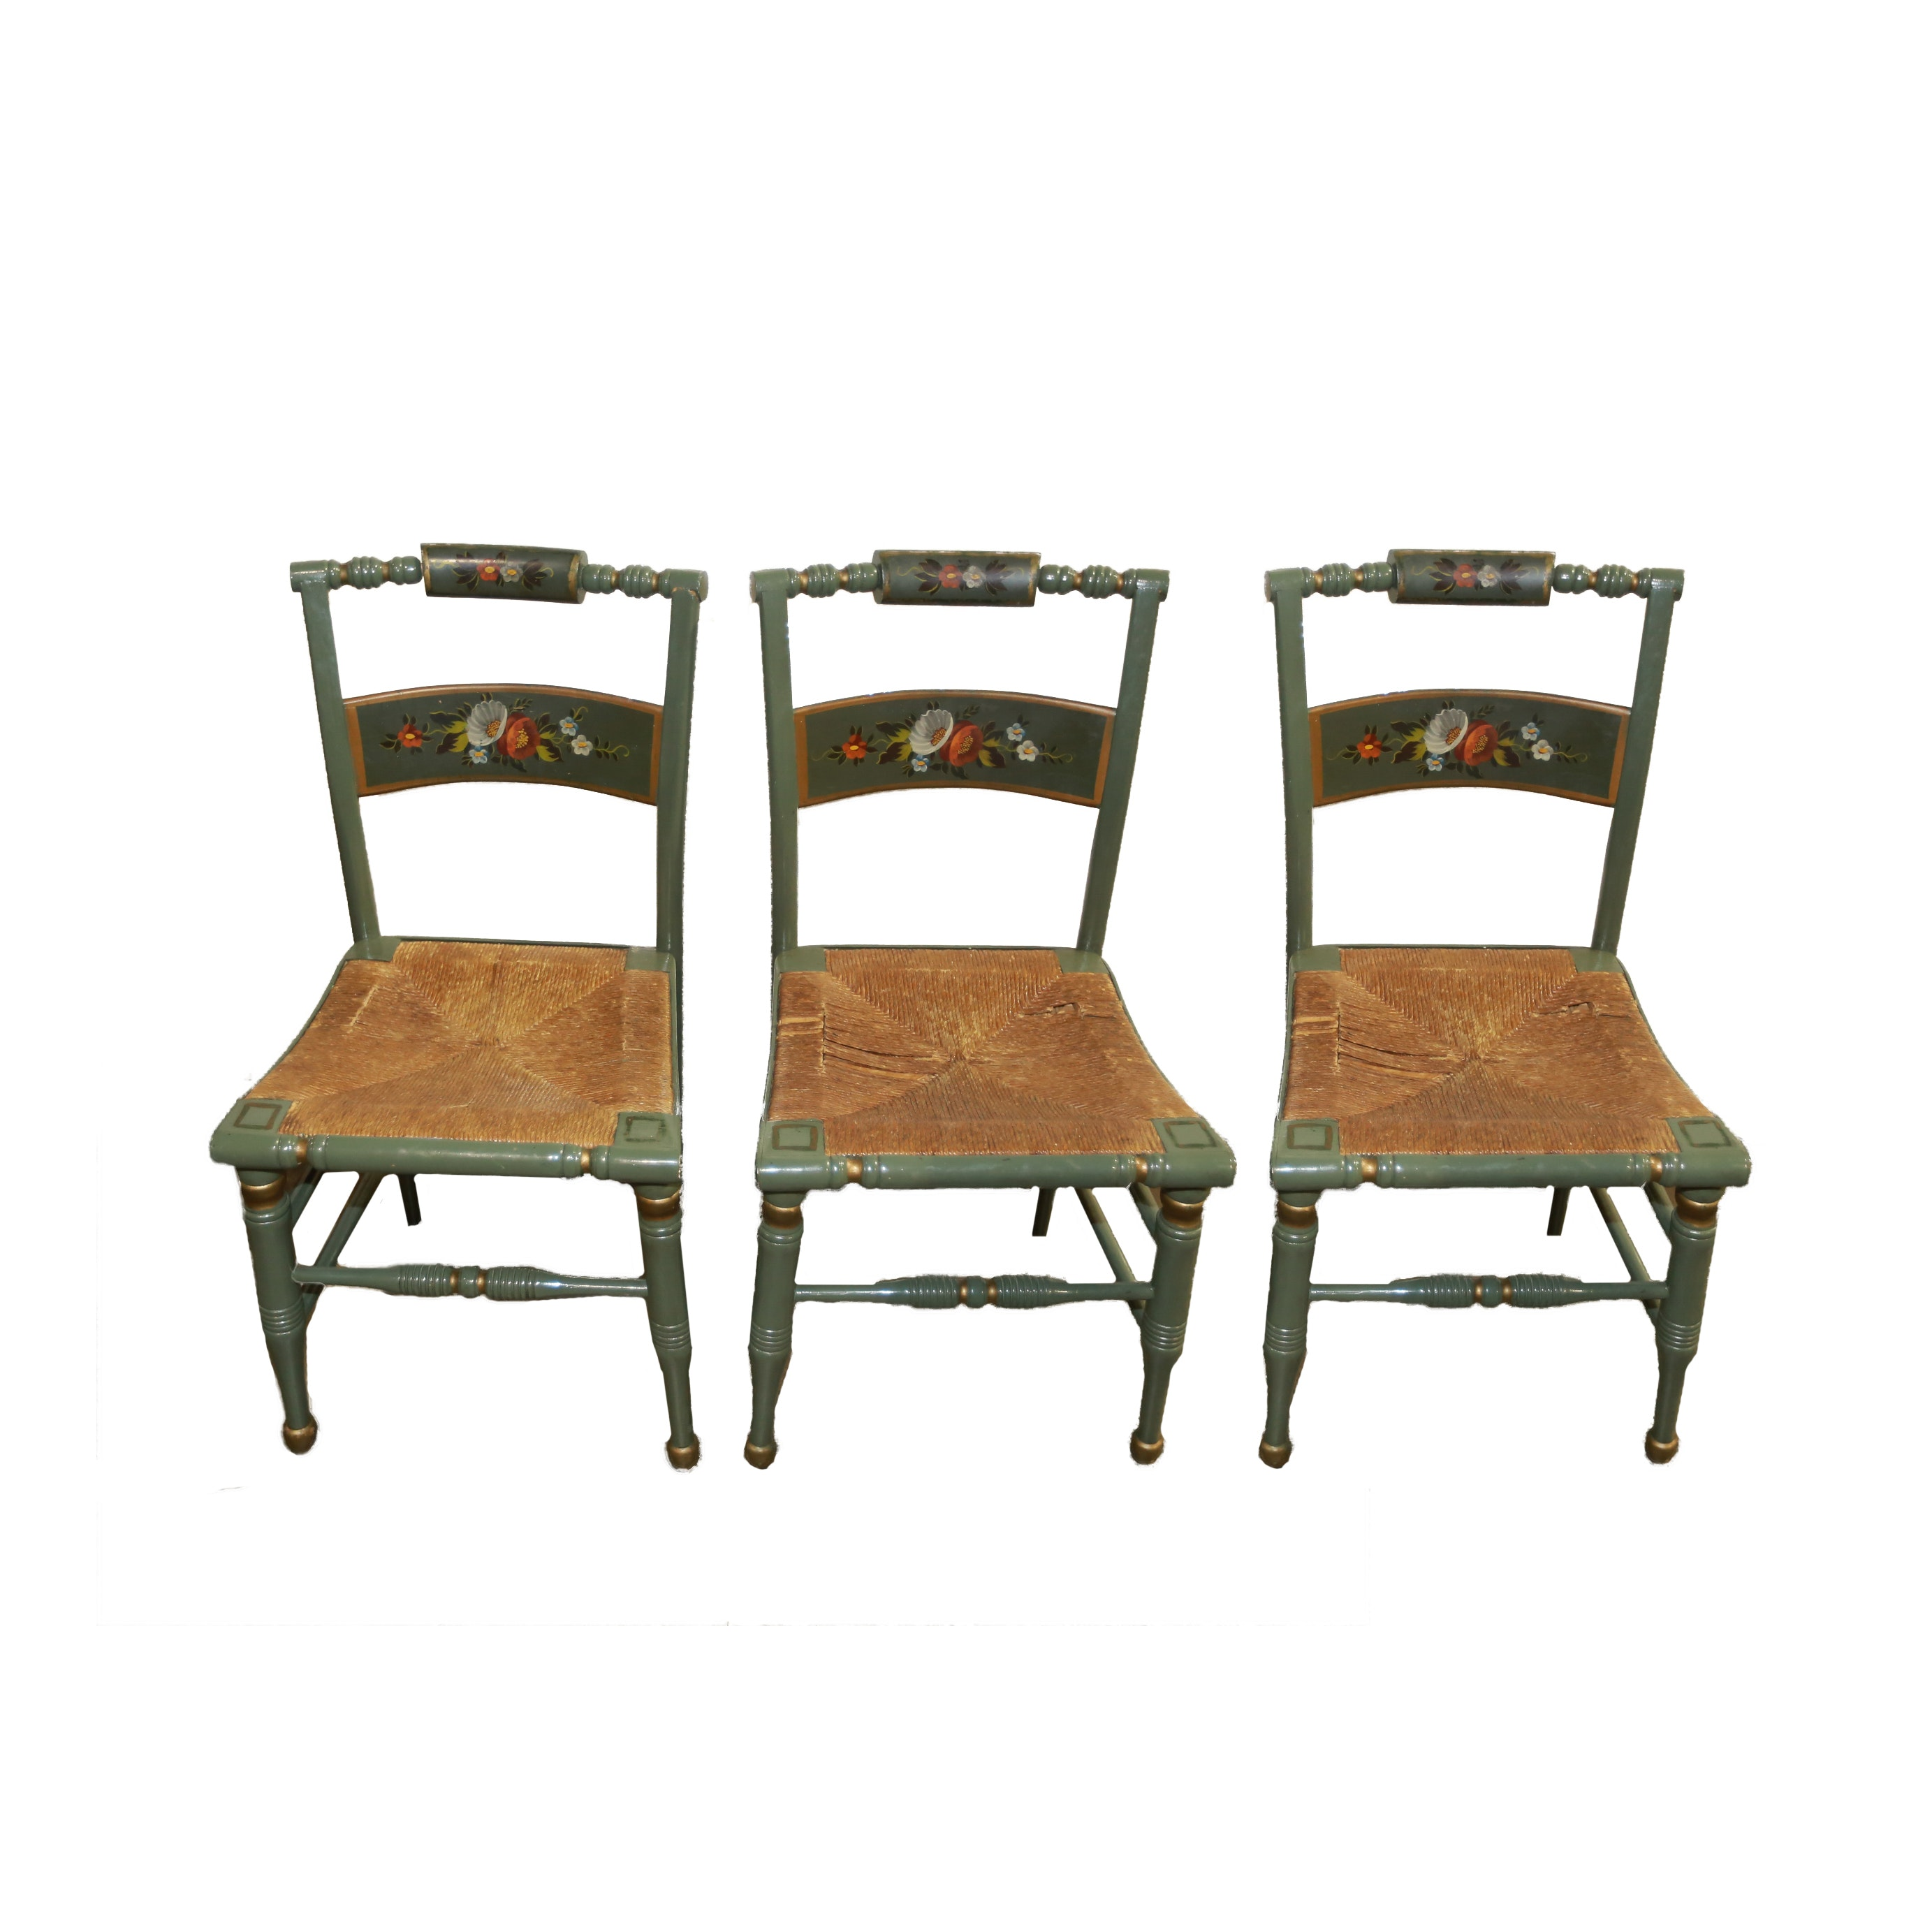 Three Hand-Painted  Hitchcock Style Chairs